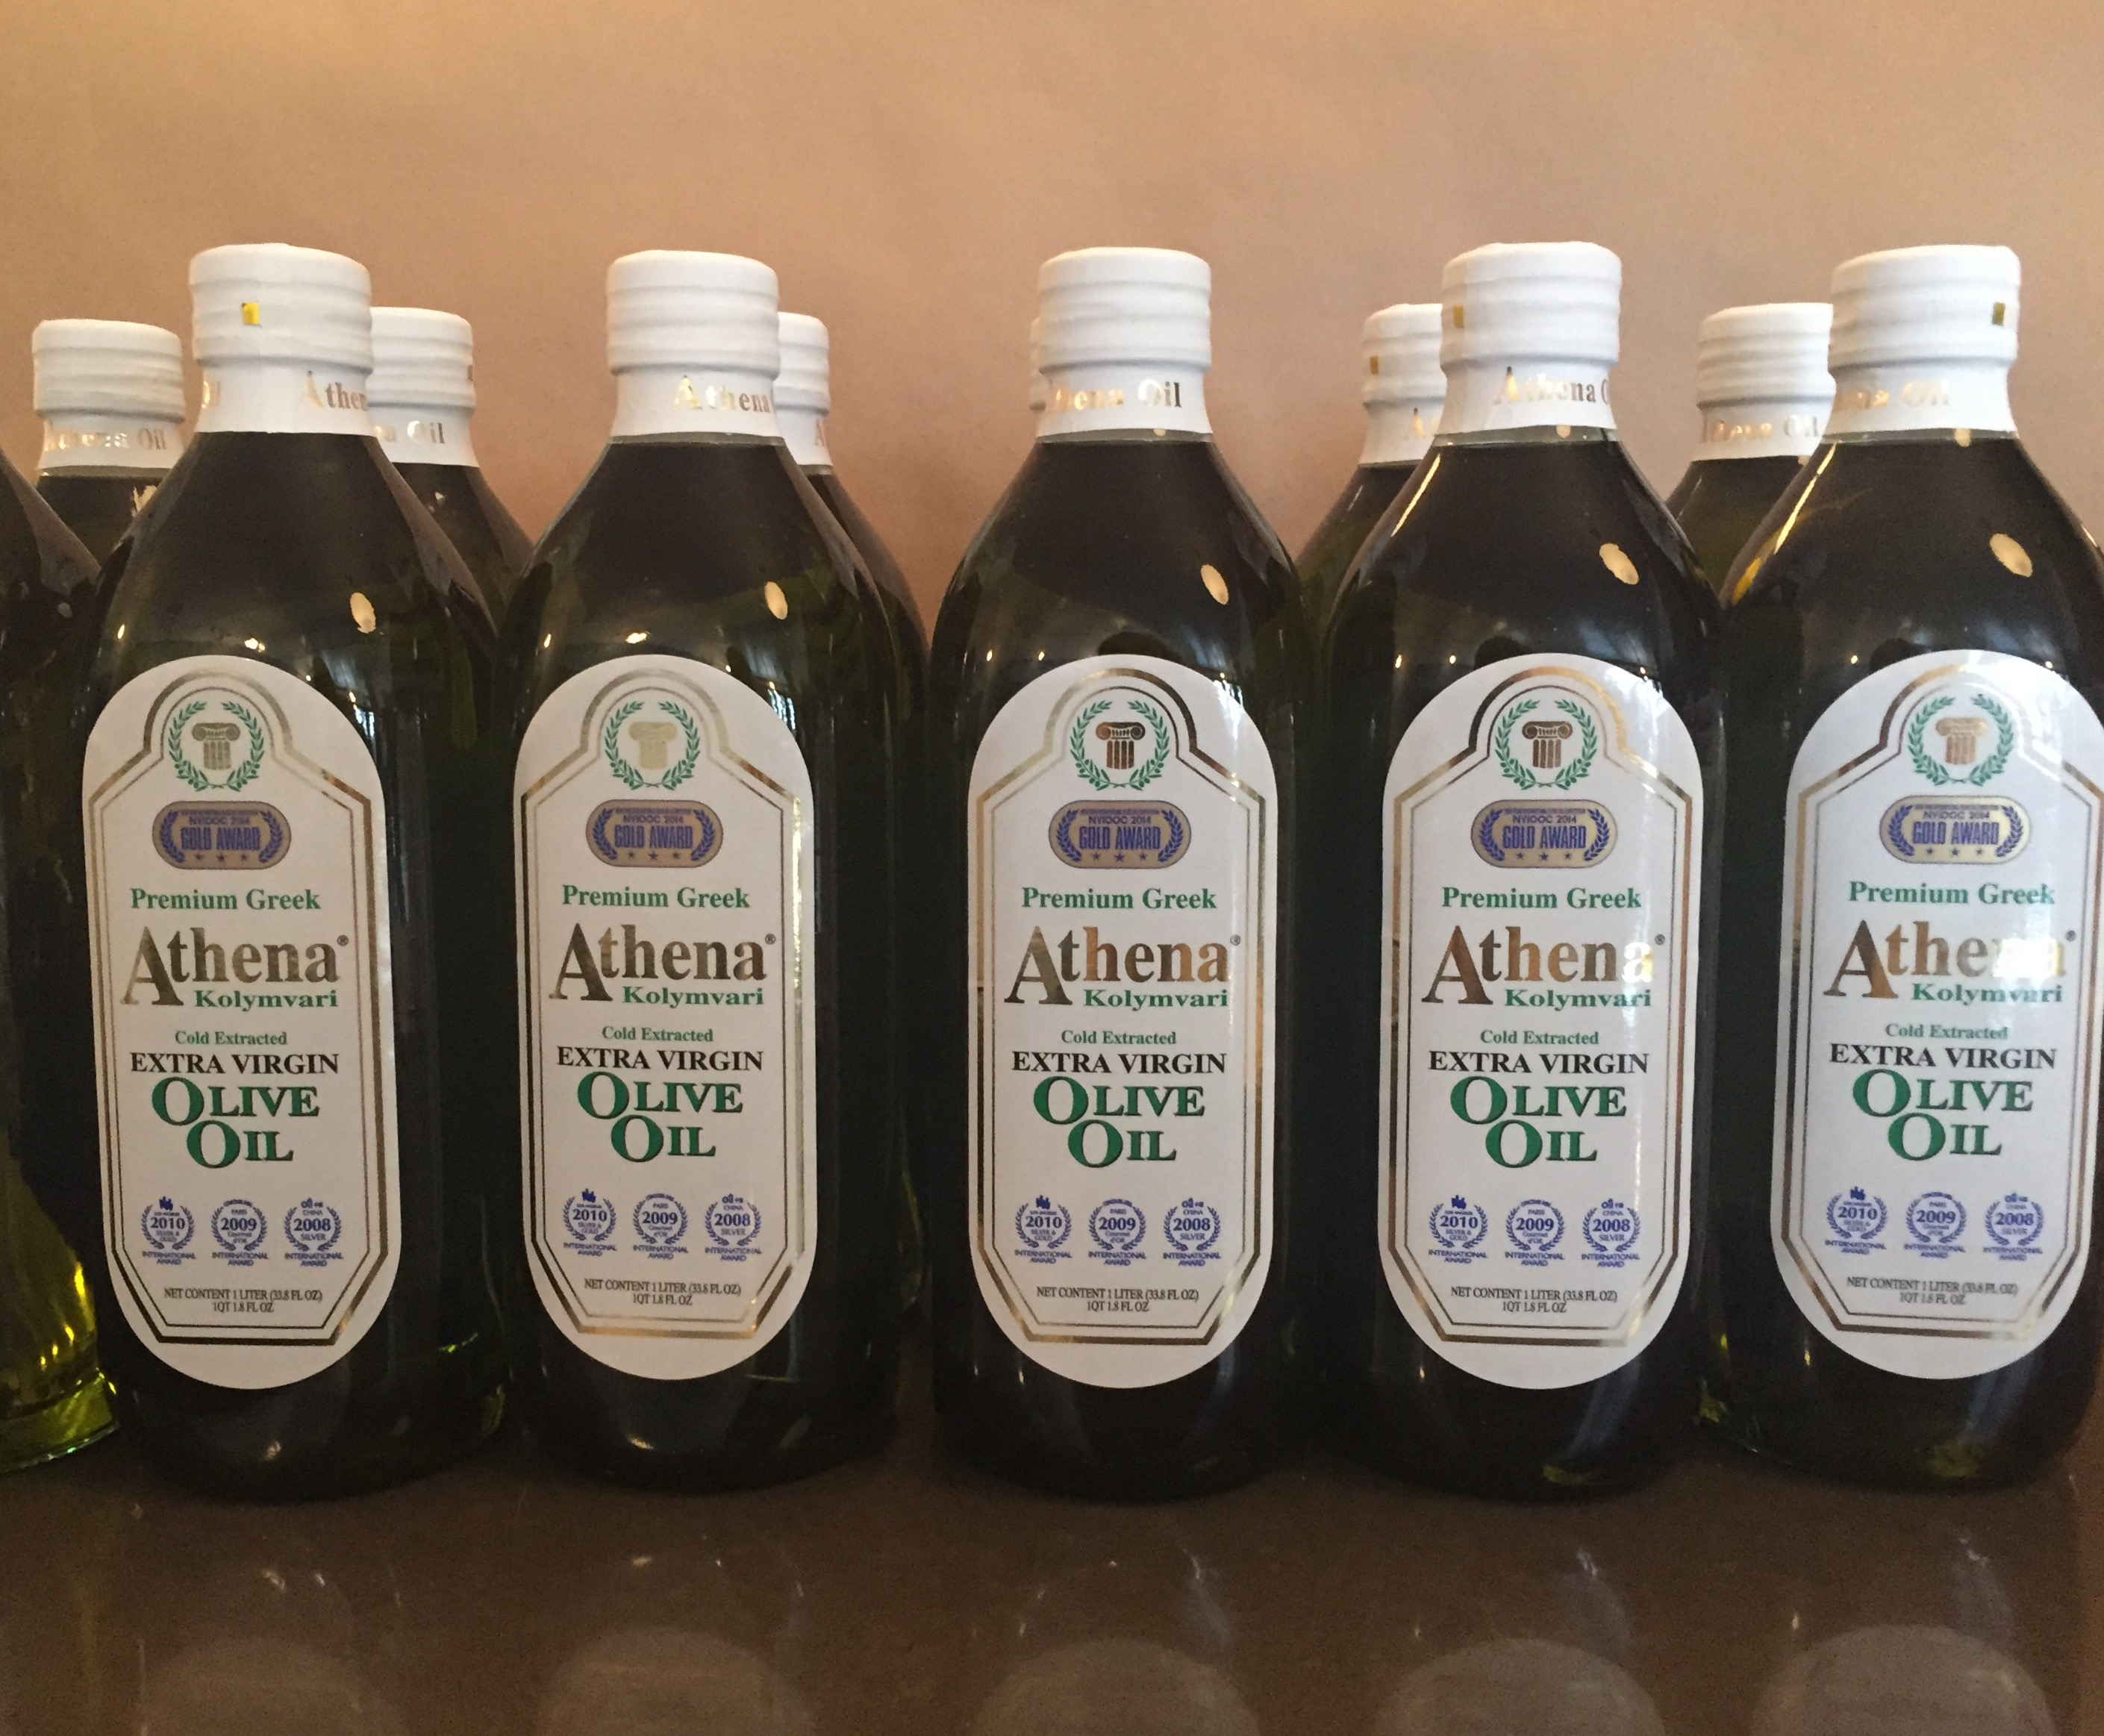 High-end olive oils have joined the ranks of luxury food